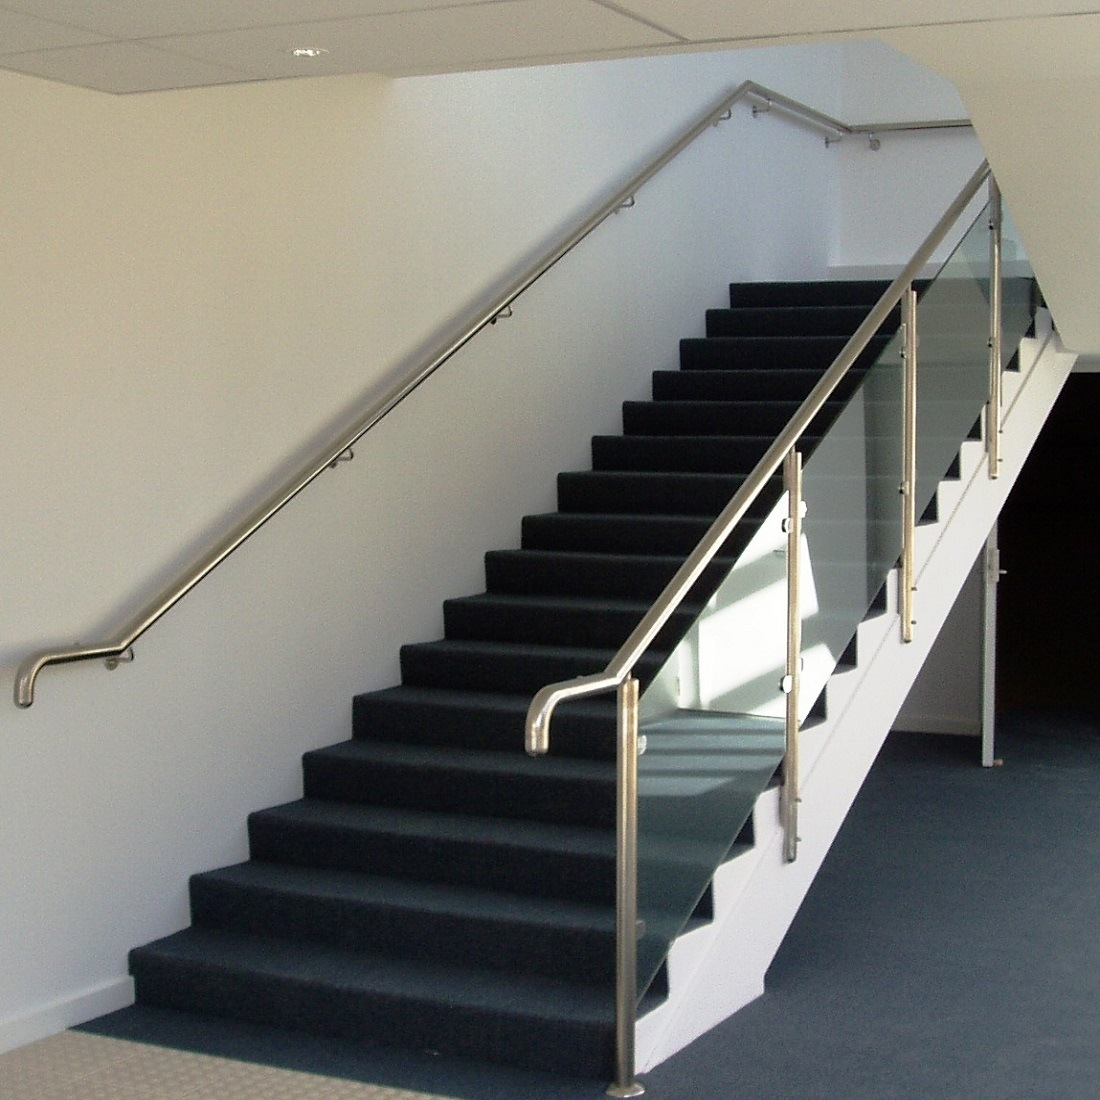 China Modern Handrail Design Indoor Stainless Steel Railing Glass | Stair Railing Design Glass | Basement Stairs | Modern Staircase | Stair Treads | Oak Staircase | Stainless Steel Railing